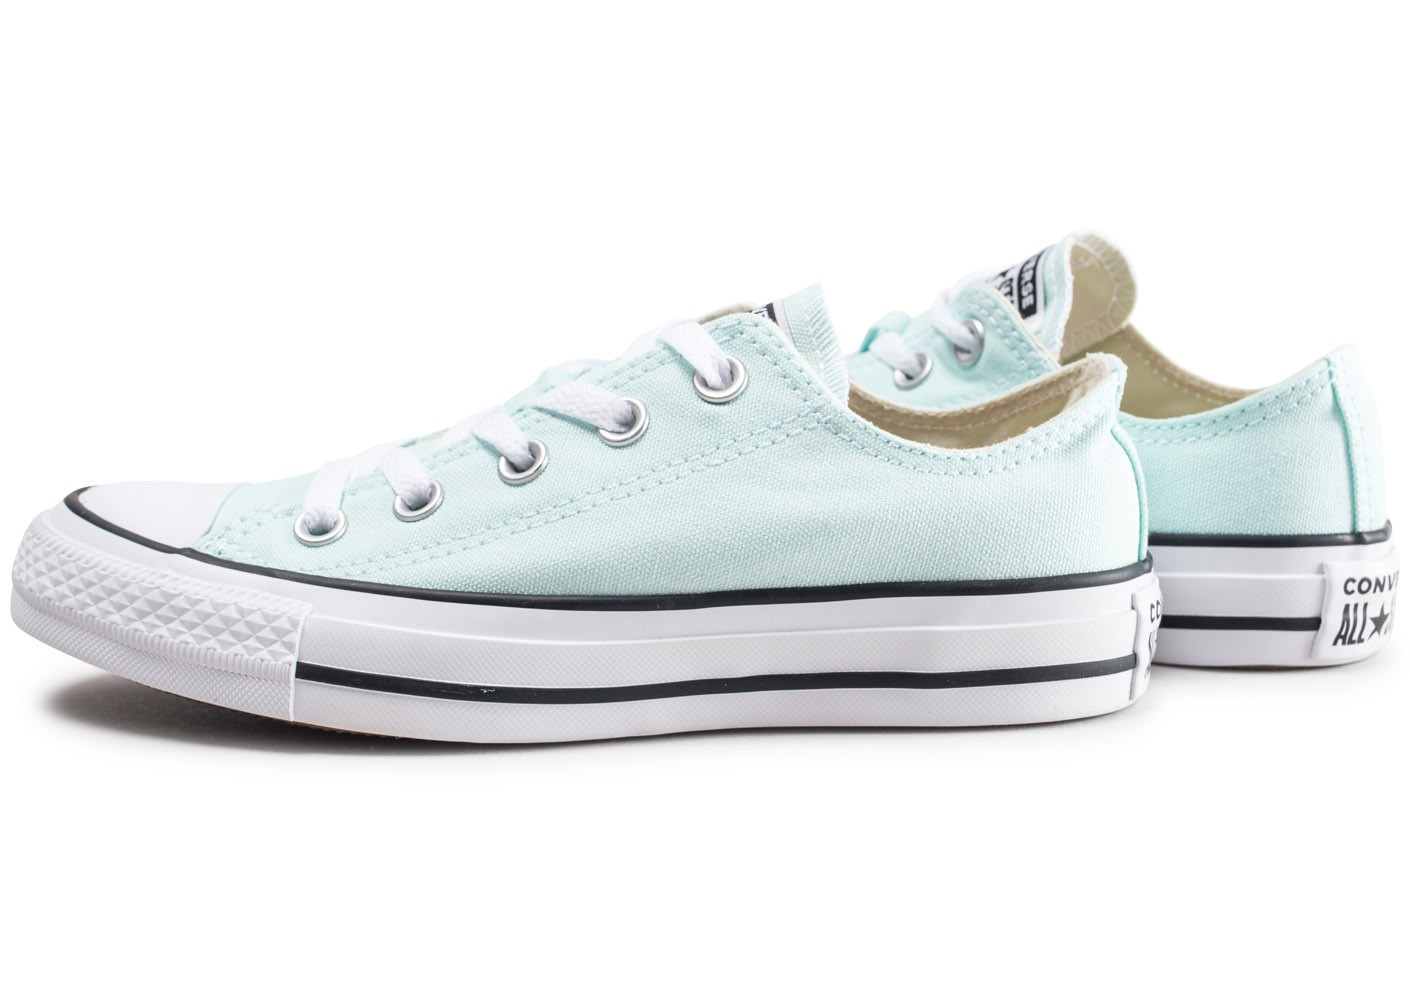 Converse Chuck Taylor All Star Low vert pastel femme ...